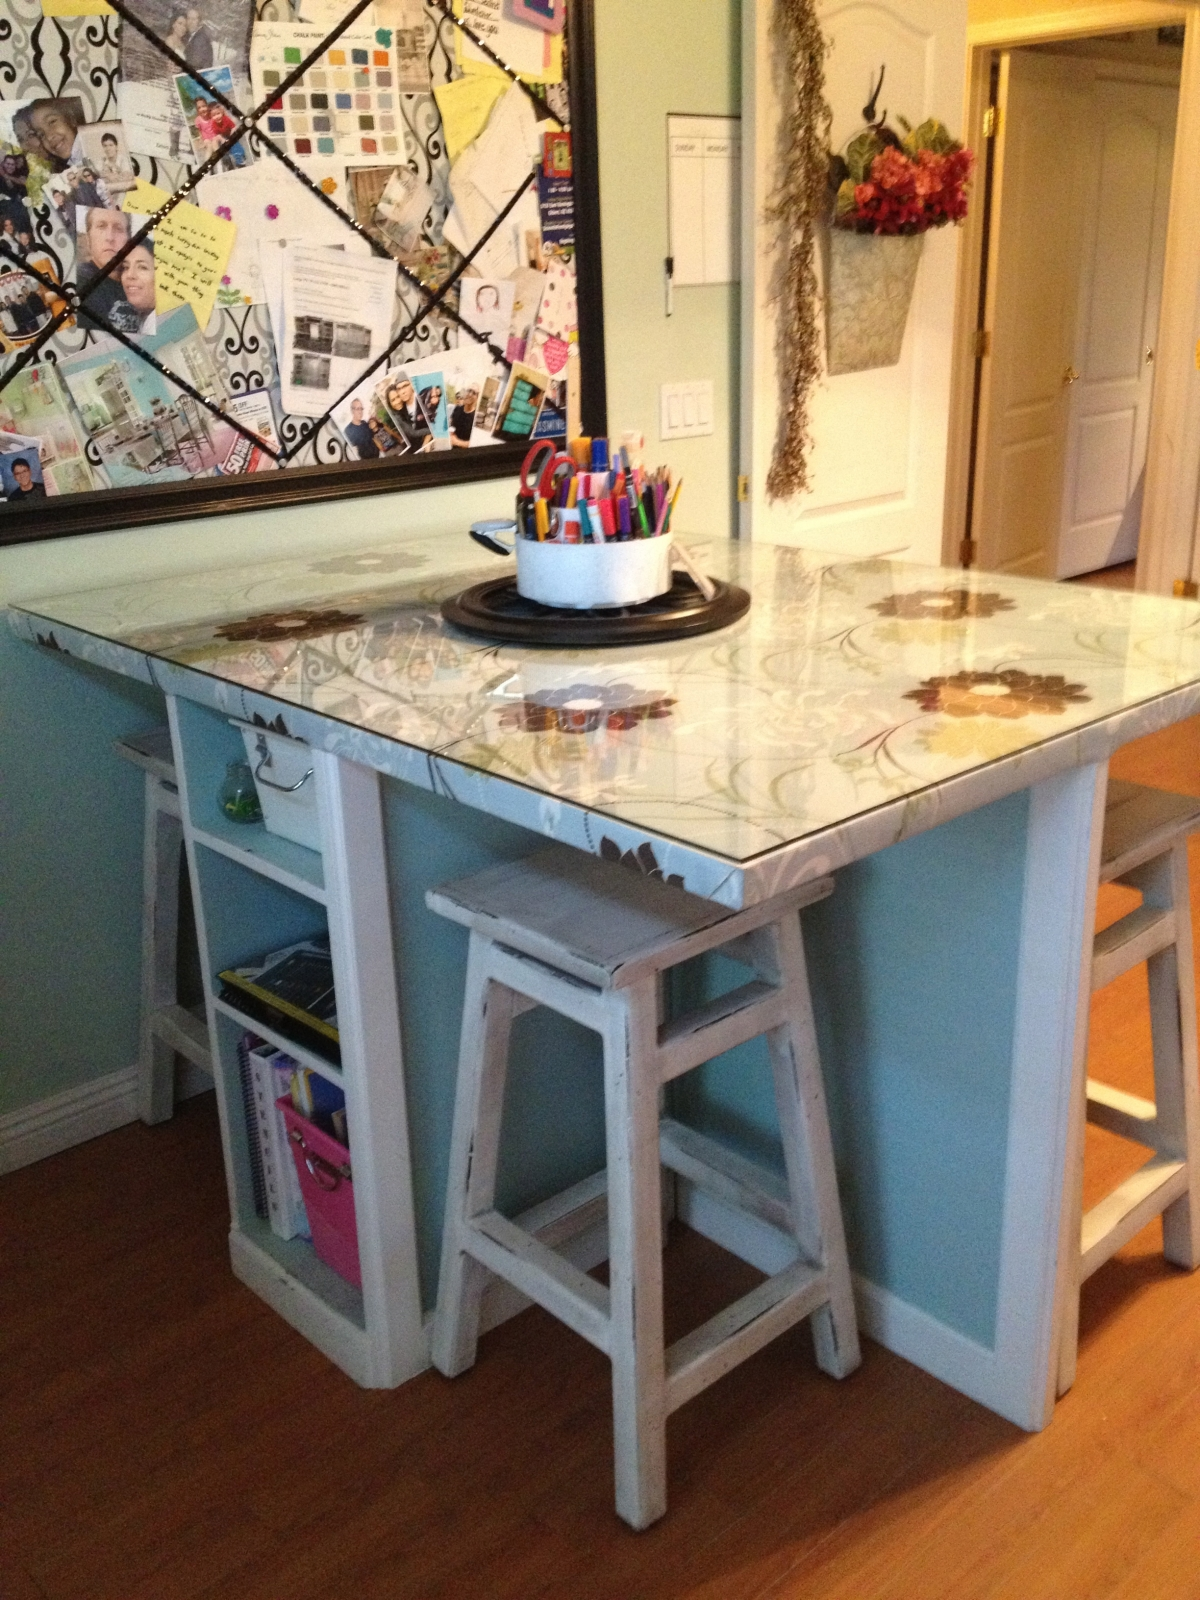 Scrapbook Table Turned Craft Table Art Room Part 2